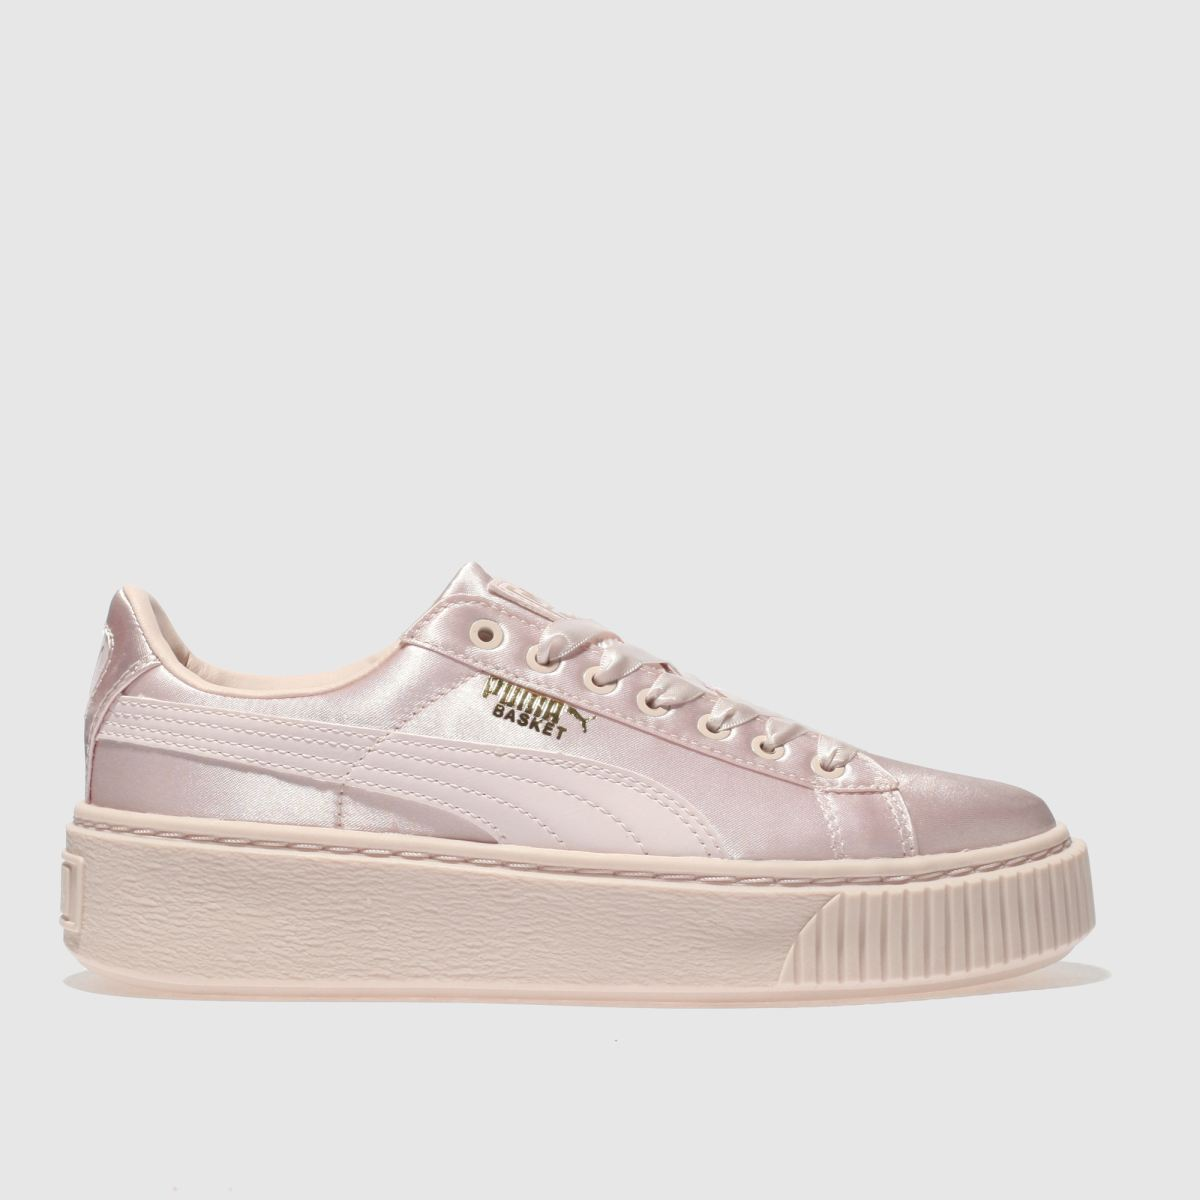 Puma Pale Pink Basket Platform Tween Girls Youth Youth